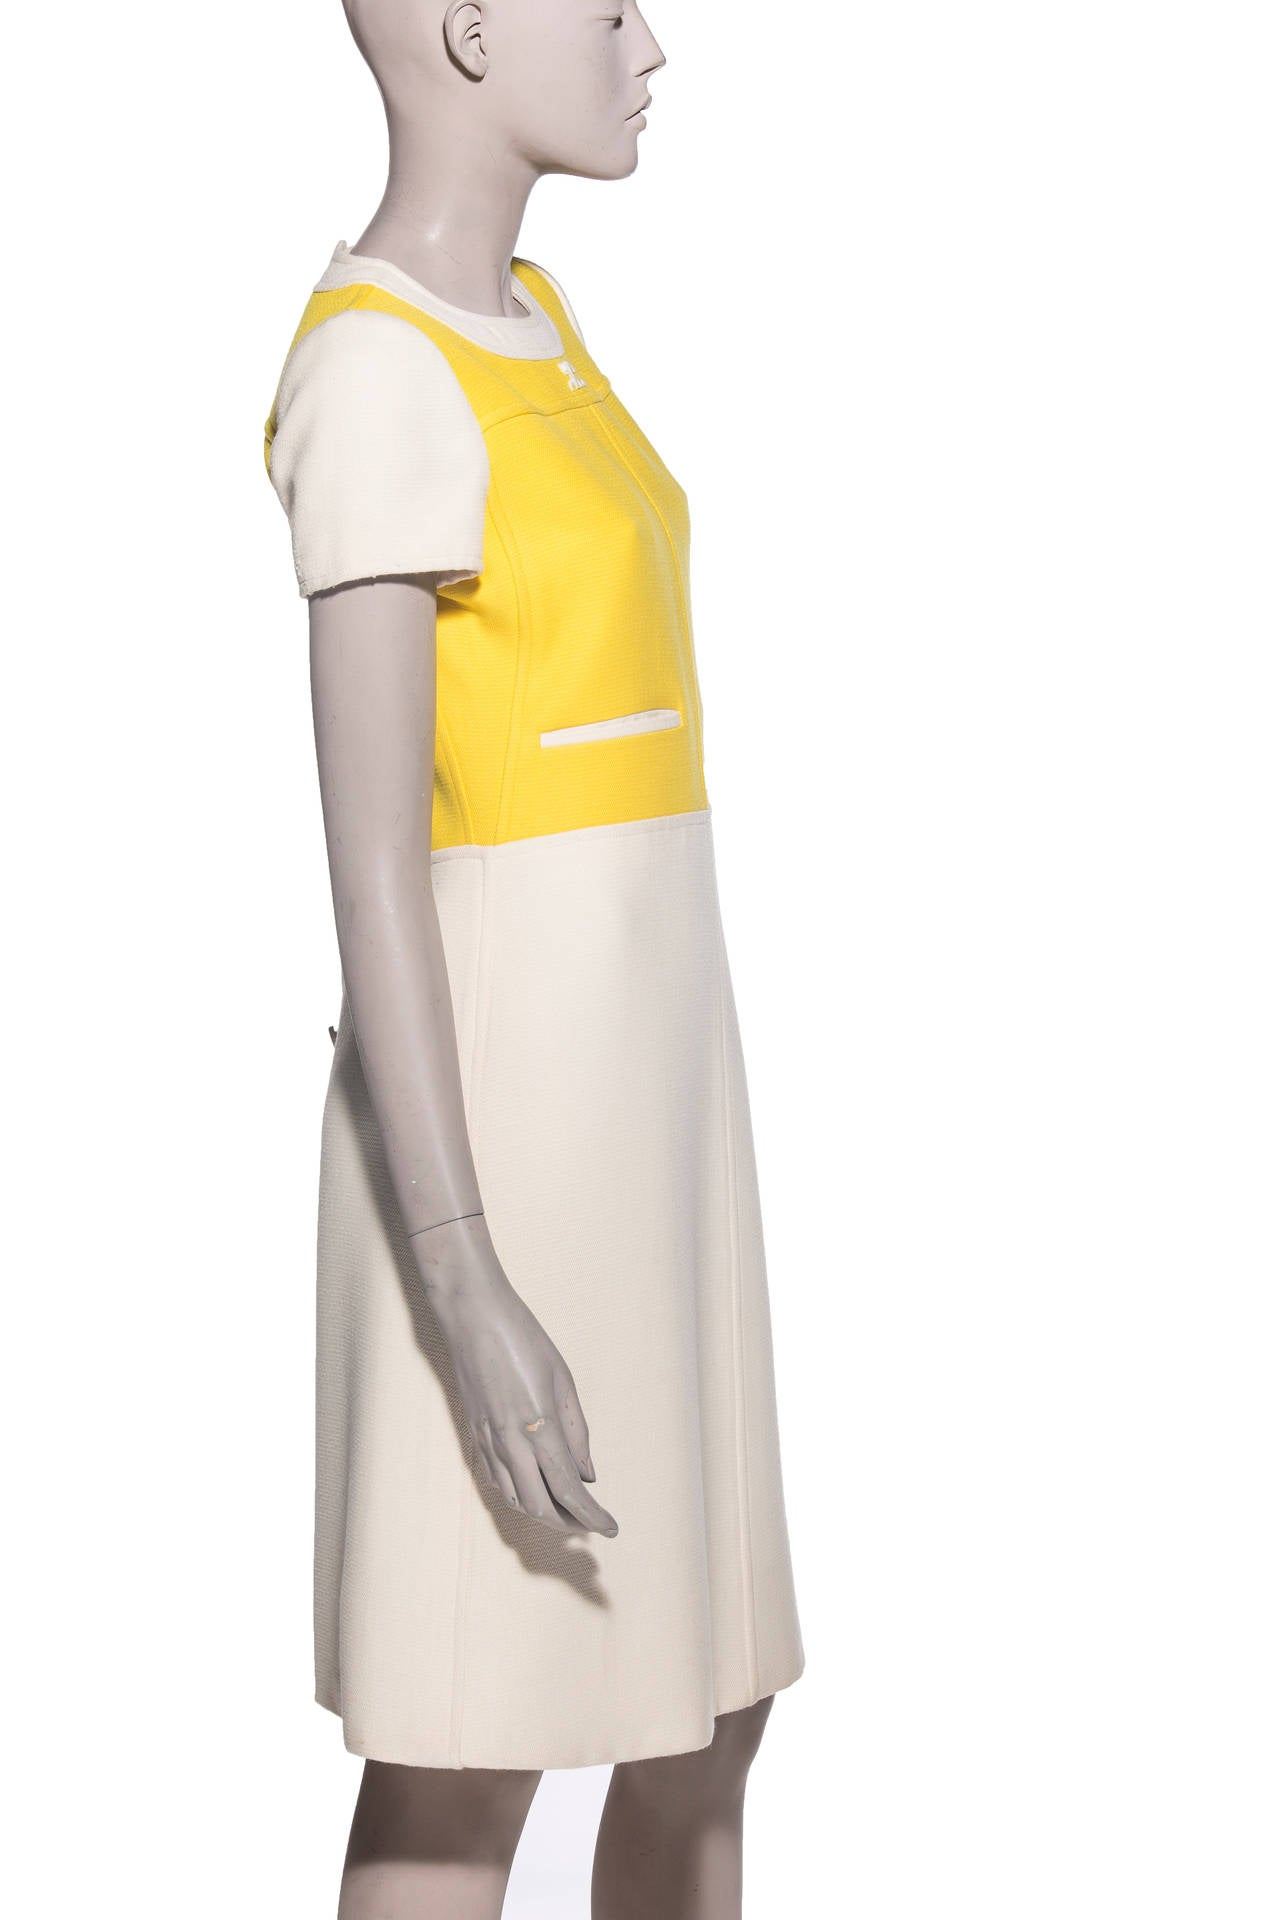 Andre Courreges  A-Line Dress With Cap Sleeves, Circa 1960's 3